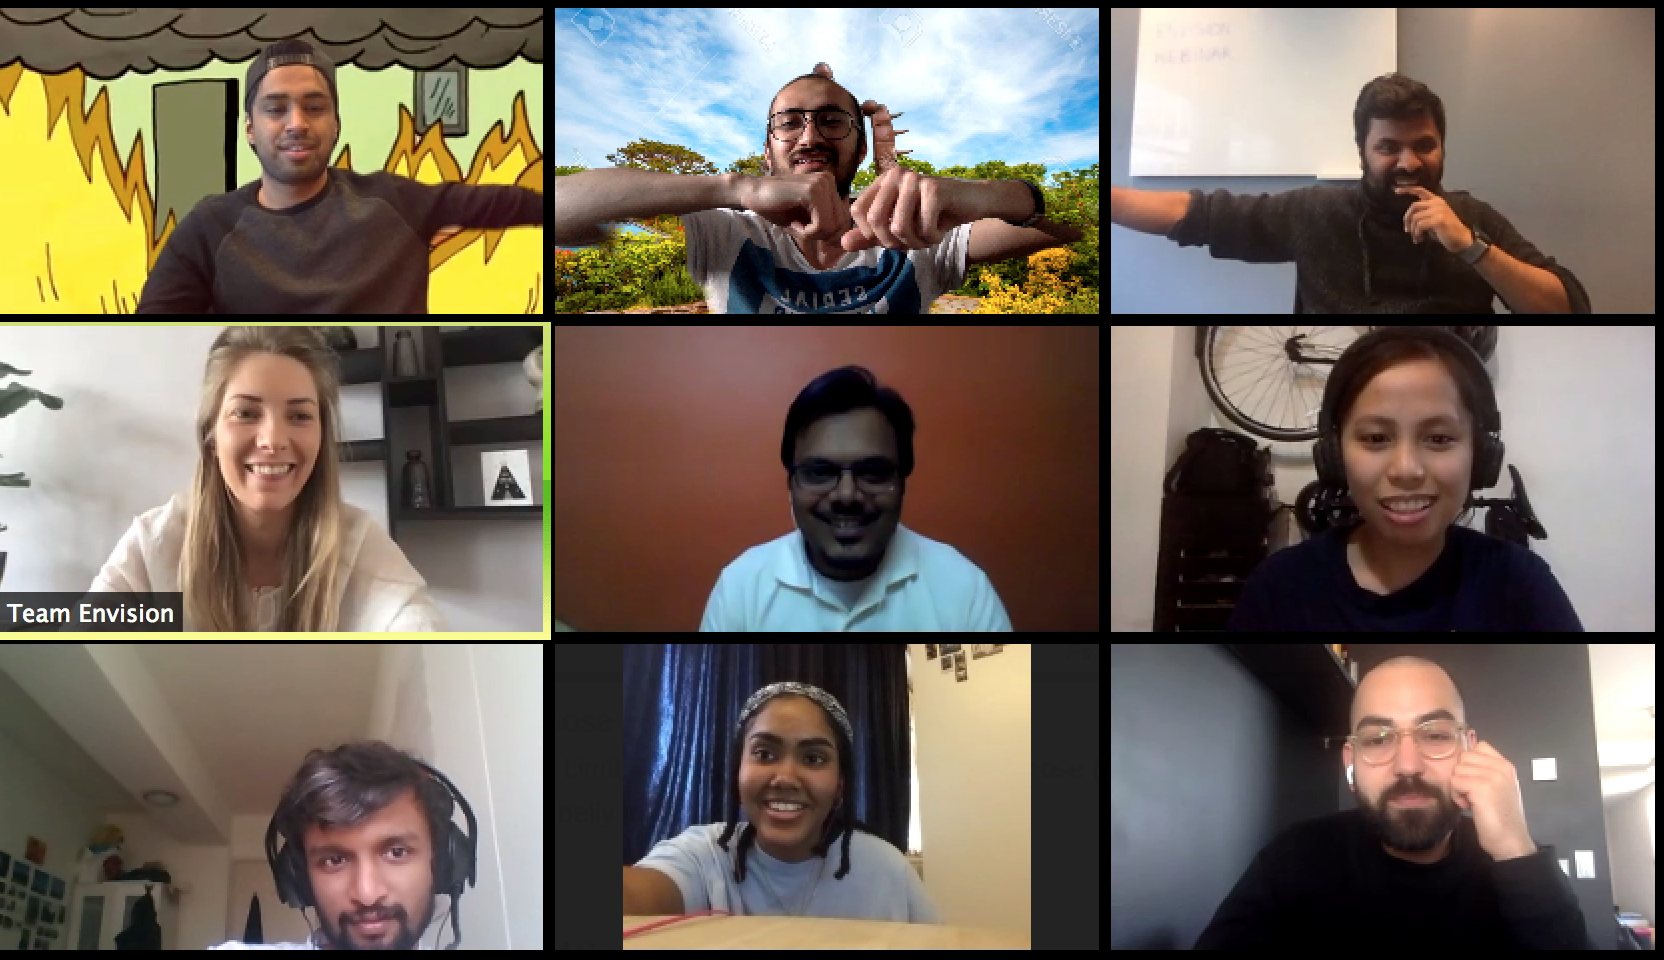 Screenshot of team Envision on a Zoom call goofing around